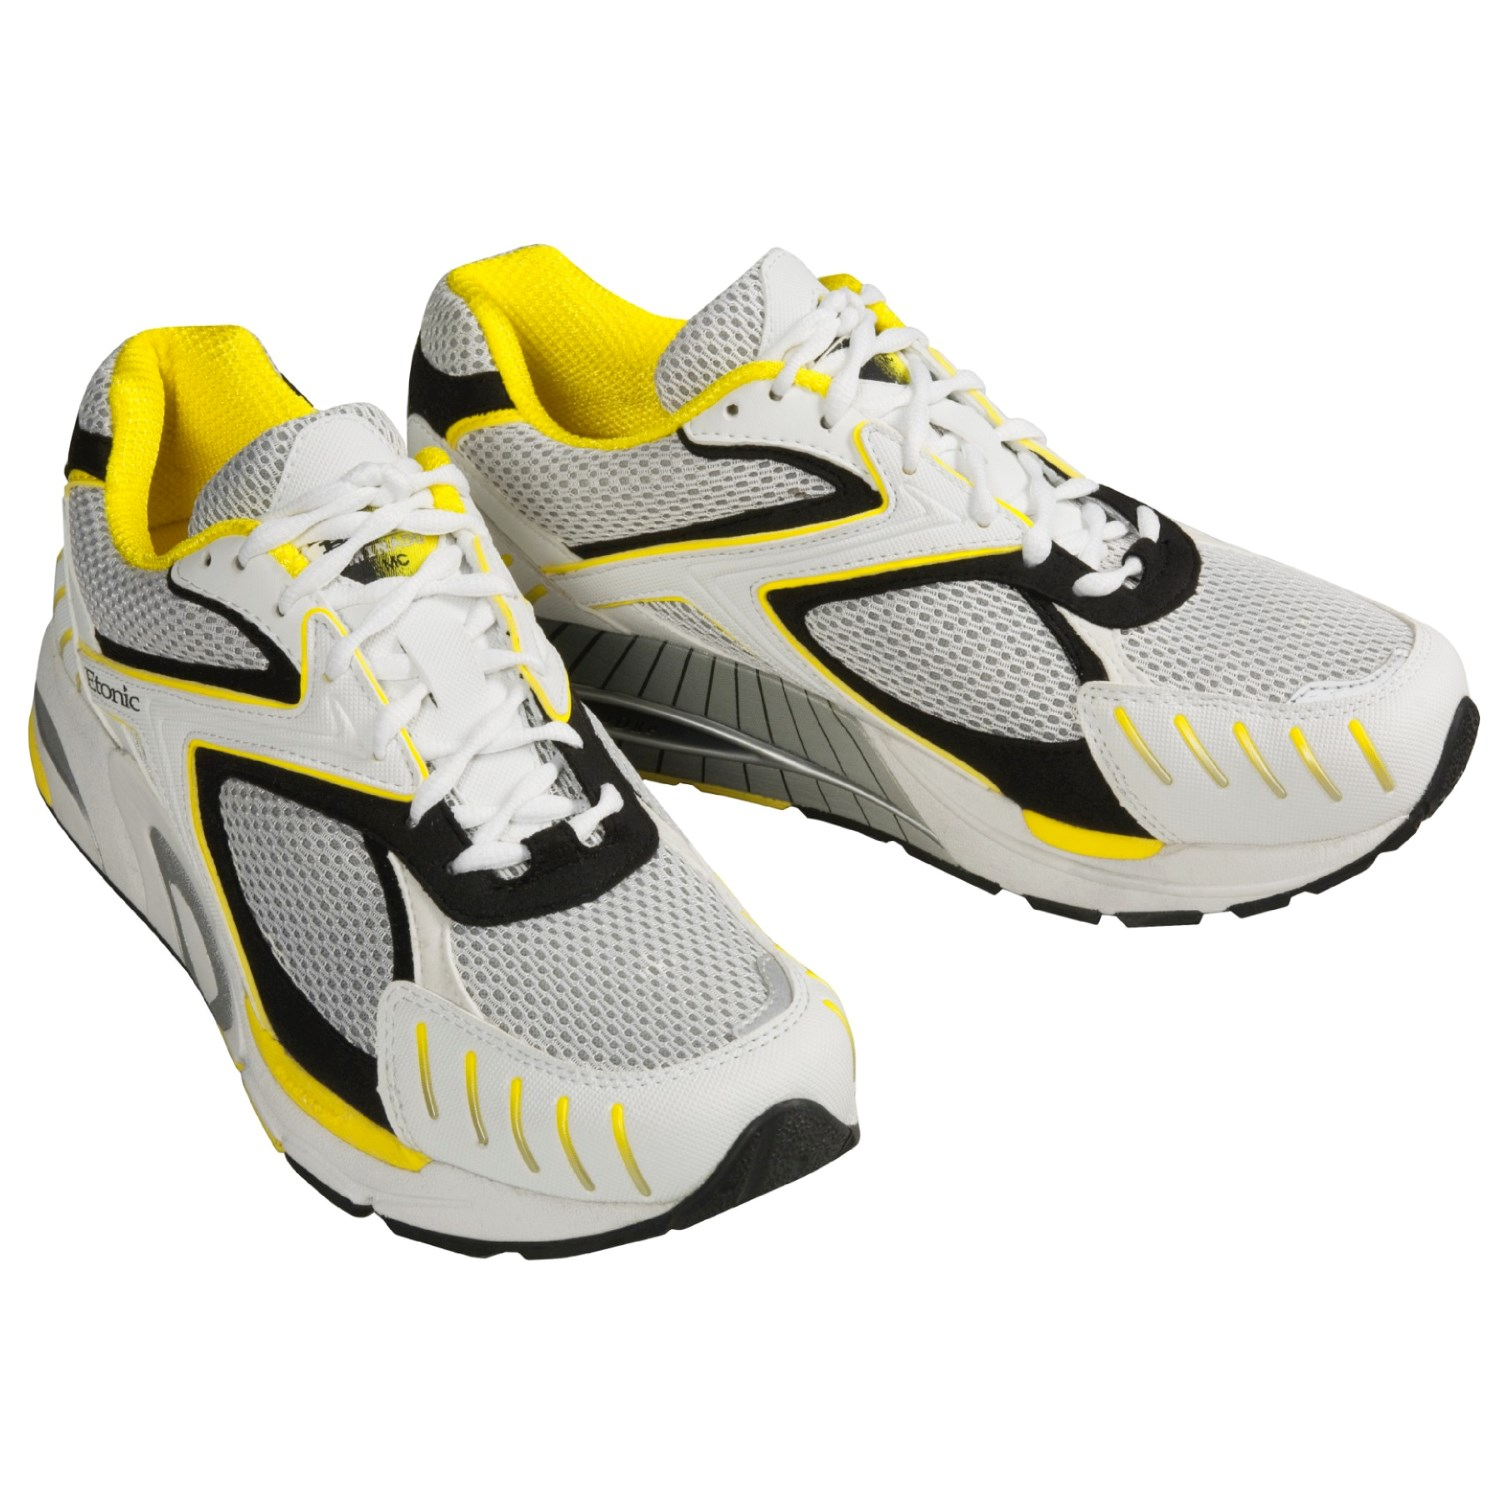 Etonic Minado Mc Running Shoe